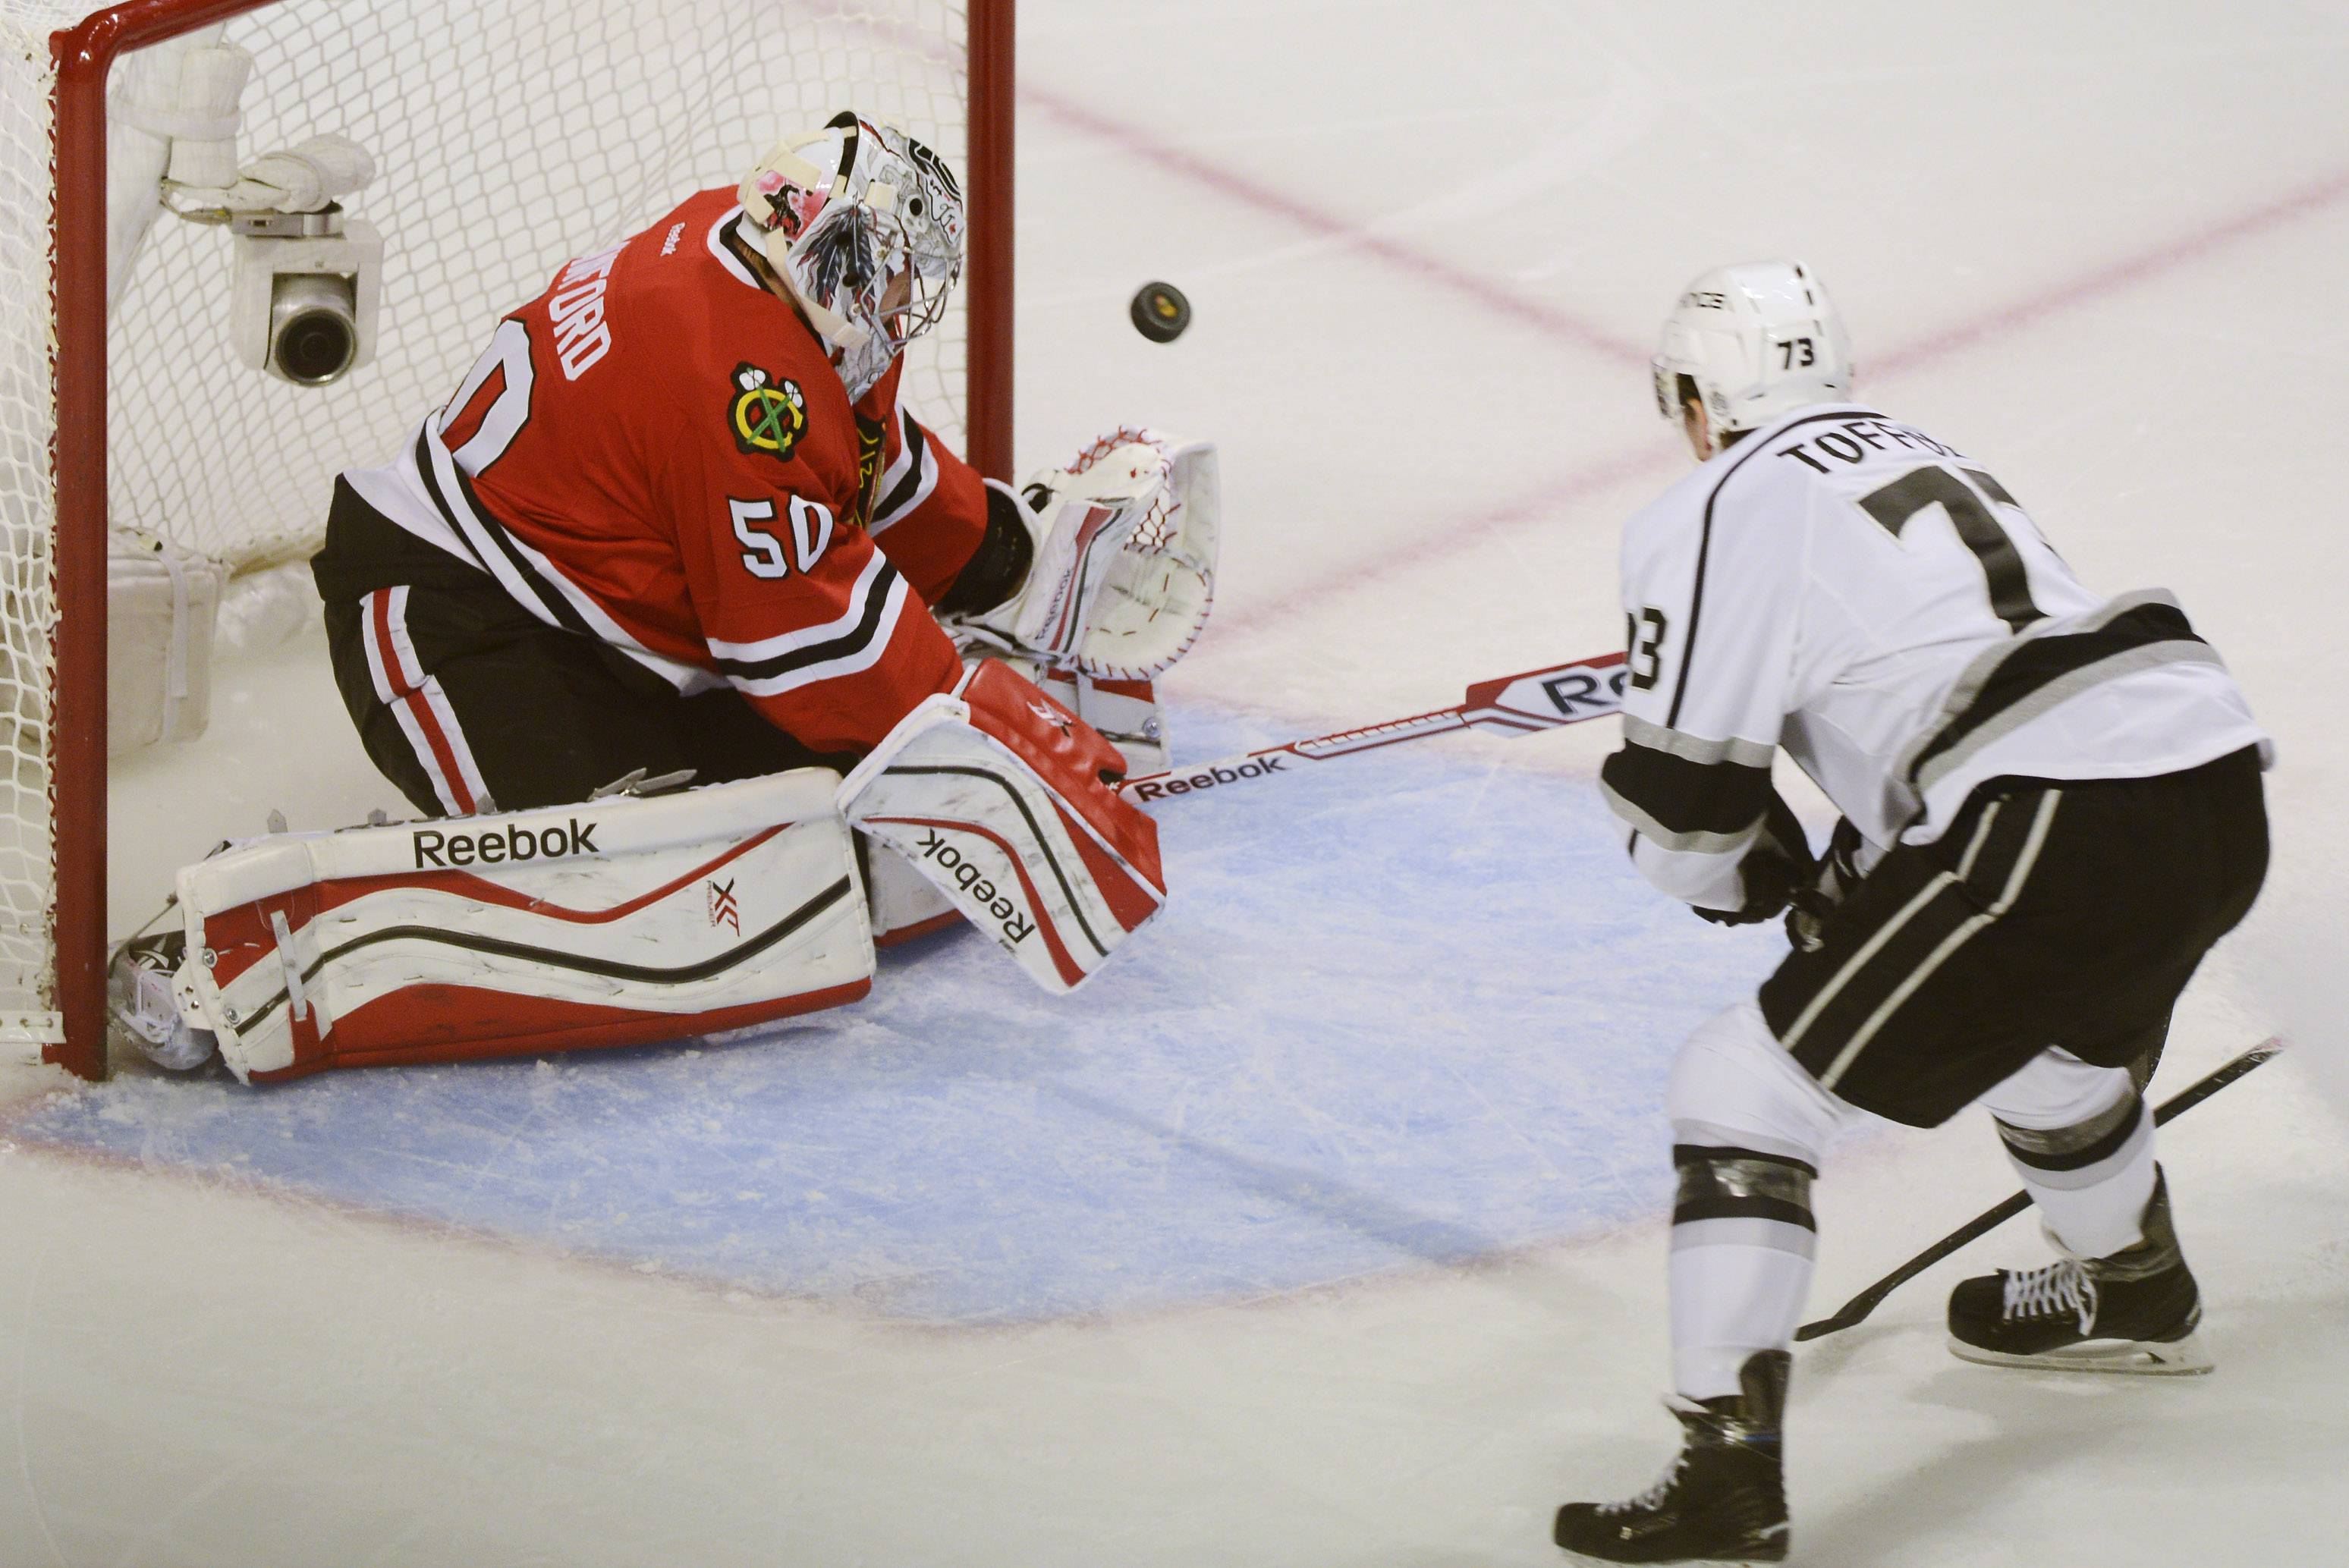 The puck gets past Chicago Blackhawks goalie Corey Crawford for a second-period goal as Los Angeles Kings center Tyler Toffoli skates toward the net during Sunday's game at the United Center in Chicago.